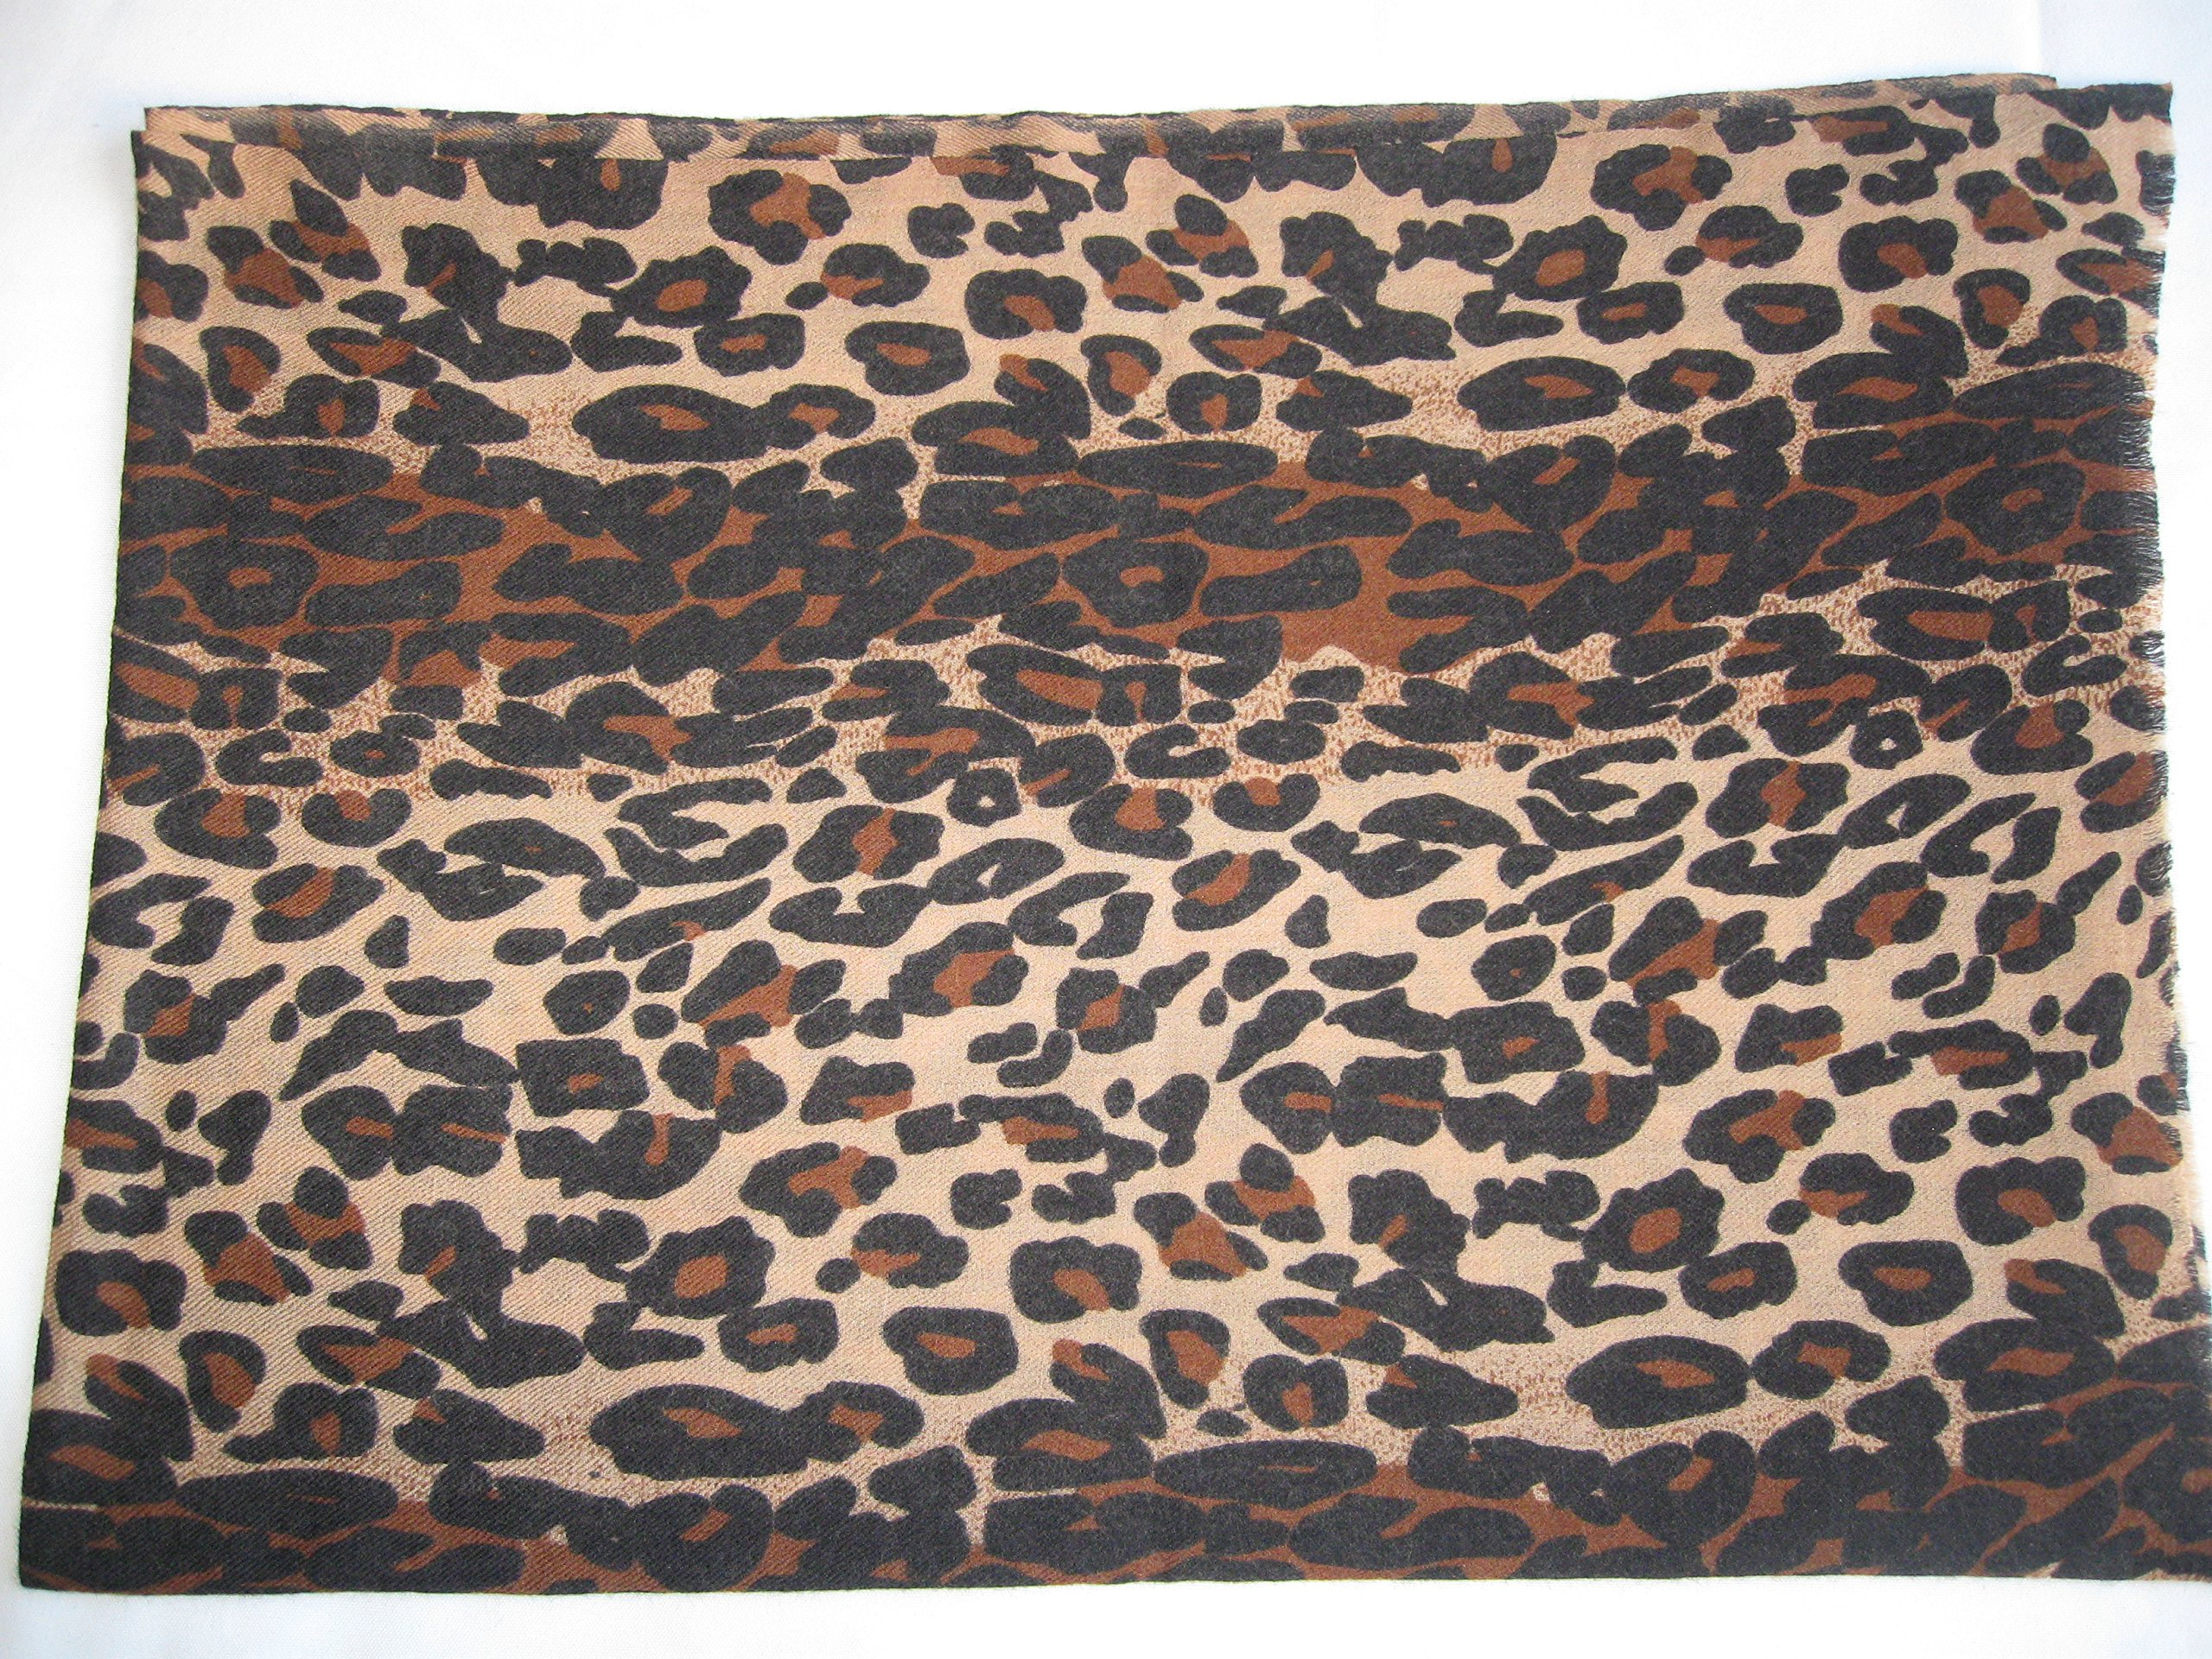 CASHMERE SHAWL -ANIMAL PRINT (CINNAMON CHEETAH) by Cashmere Pashmina Group